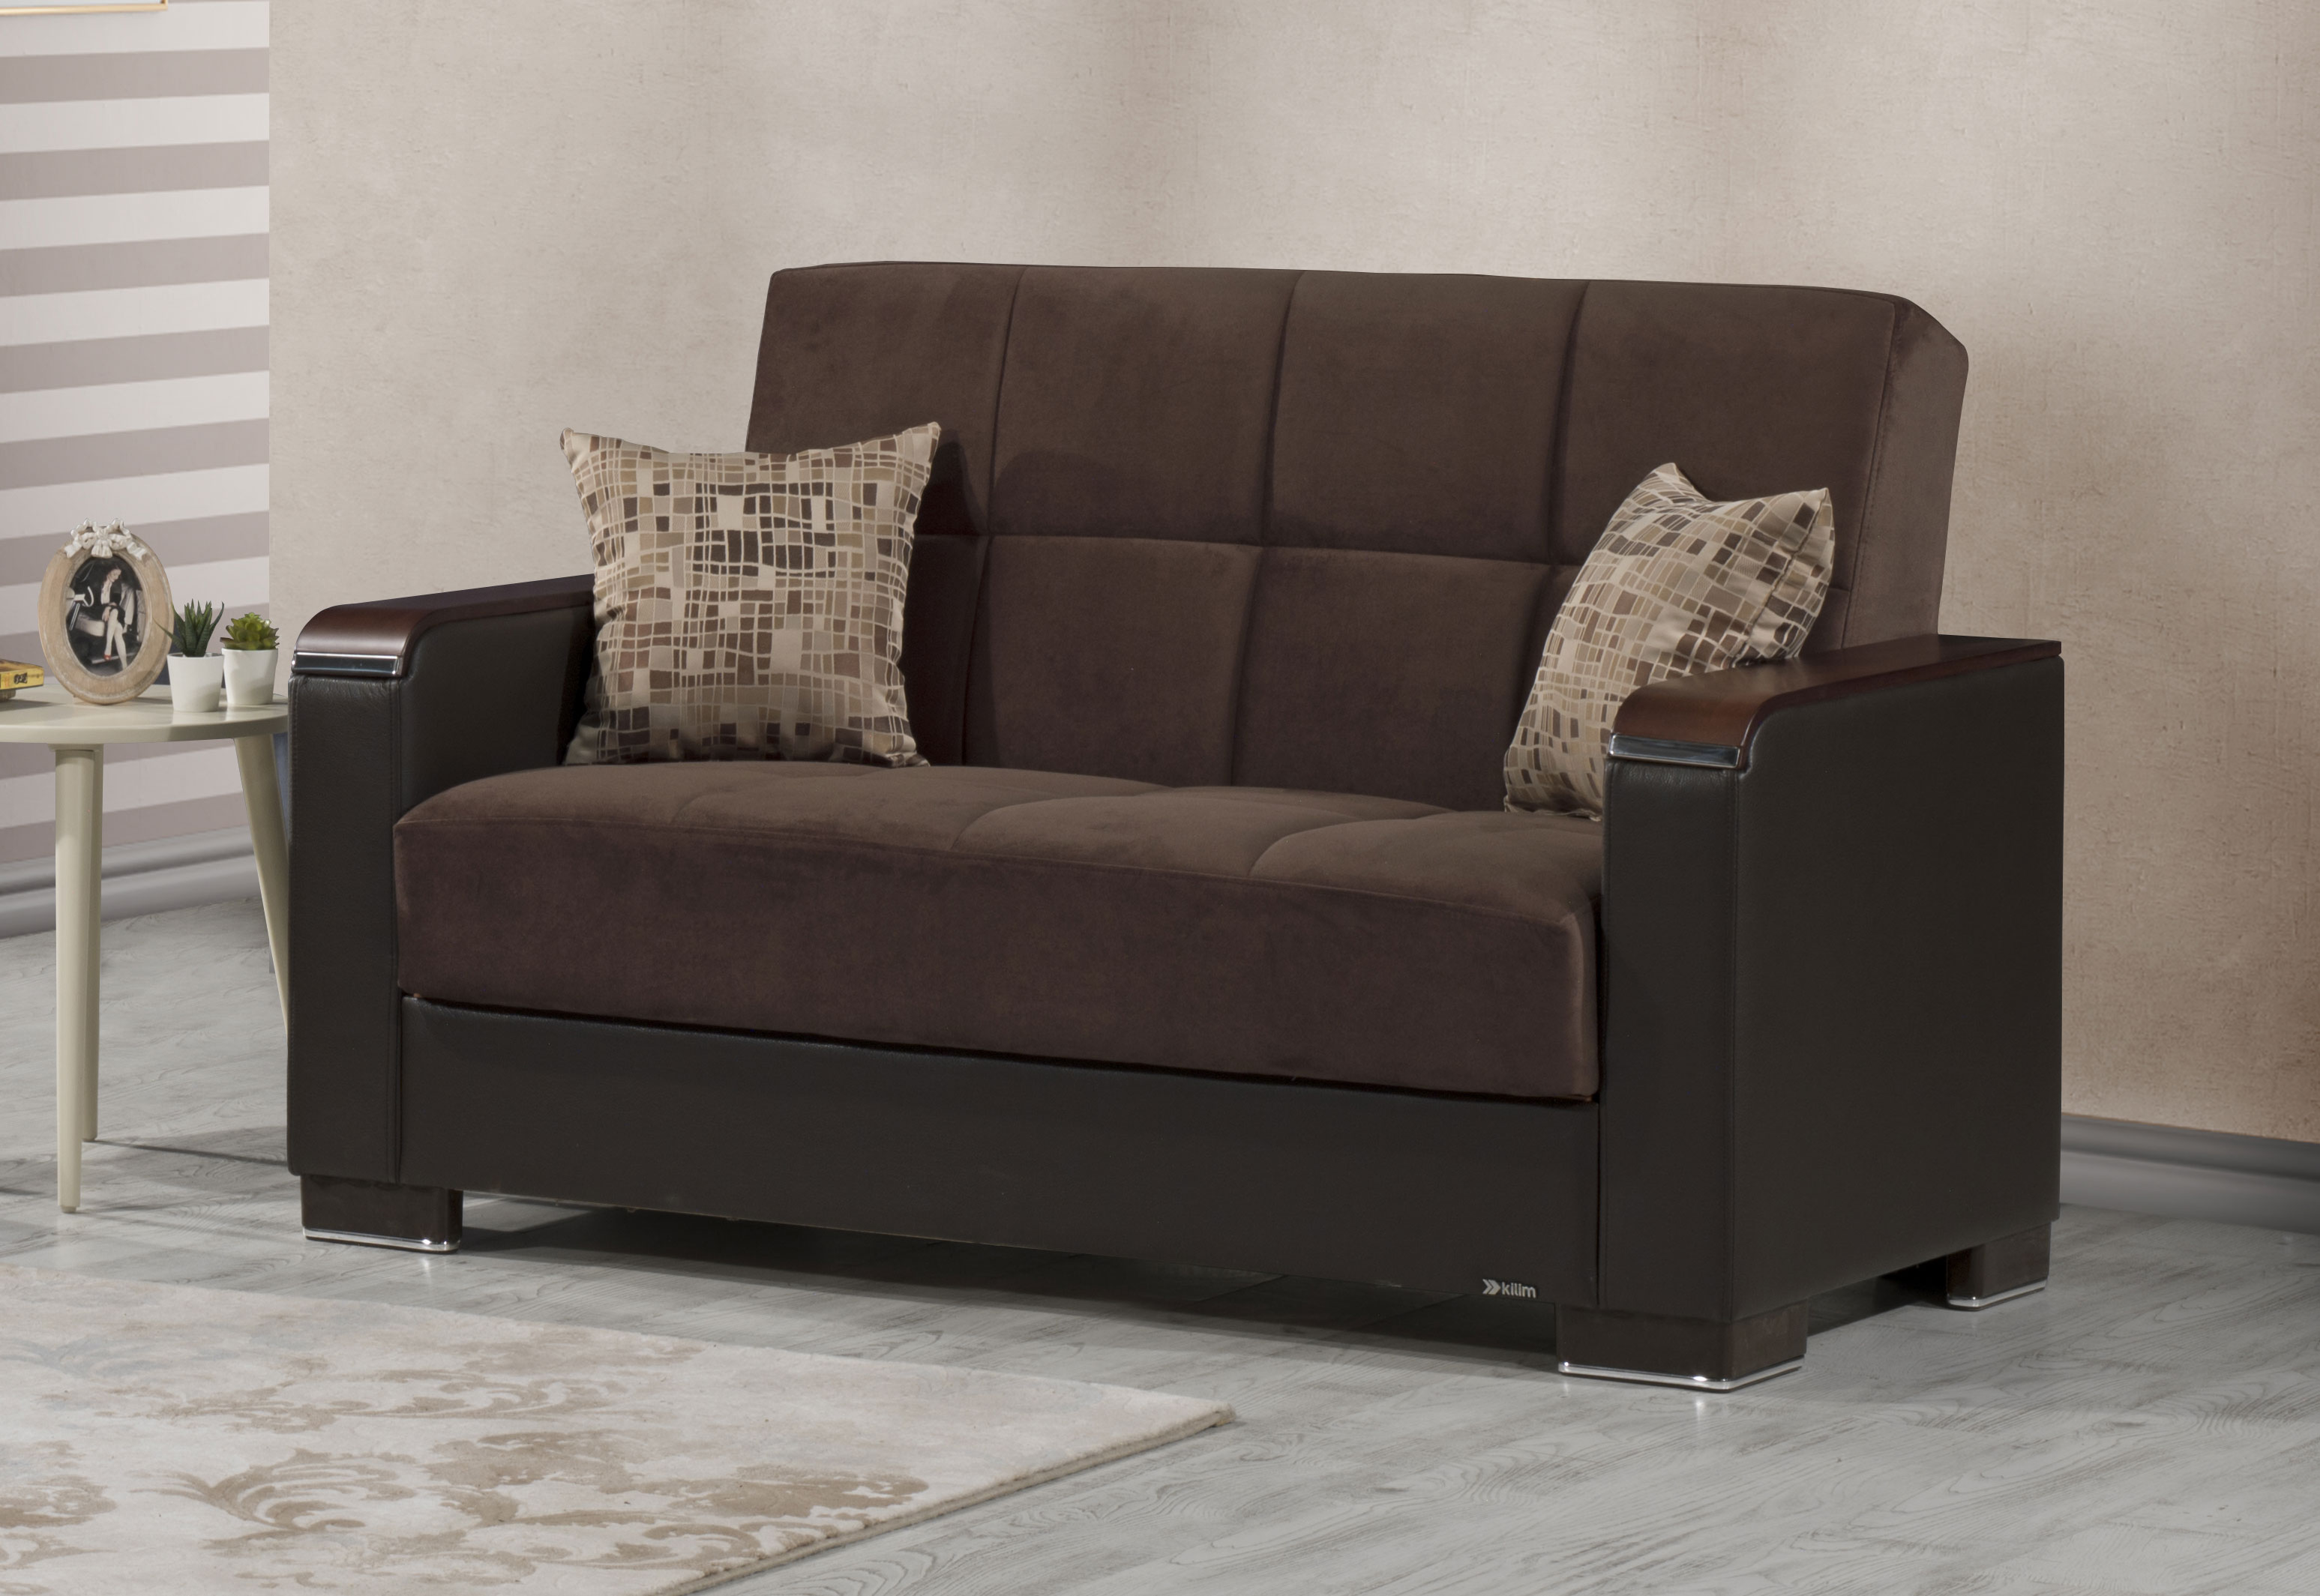 Armada X Brown Microfiber Convertible Loveseat by Casamode